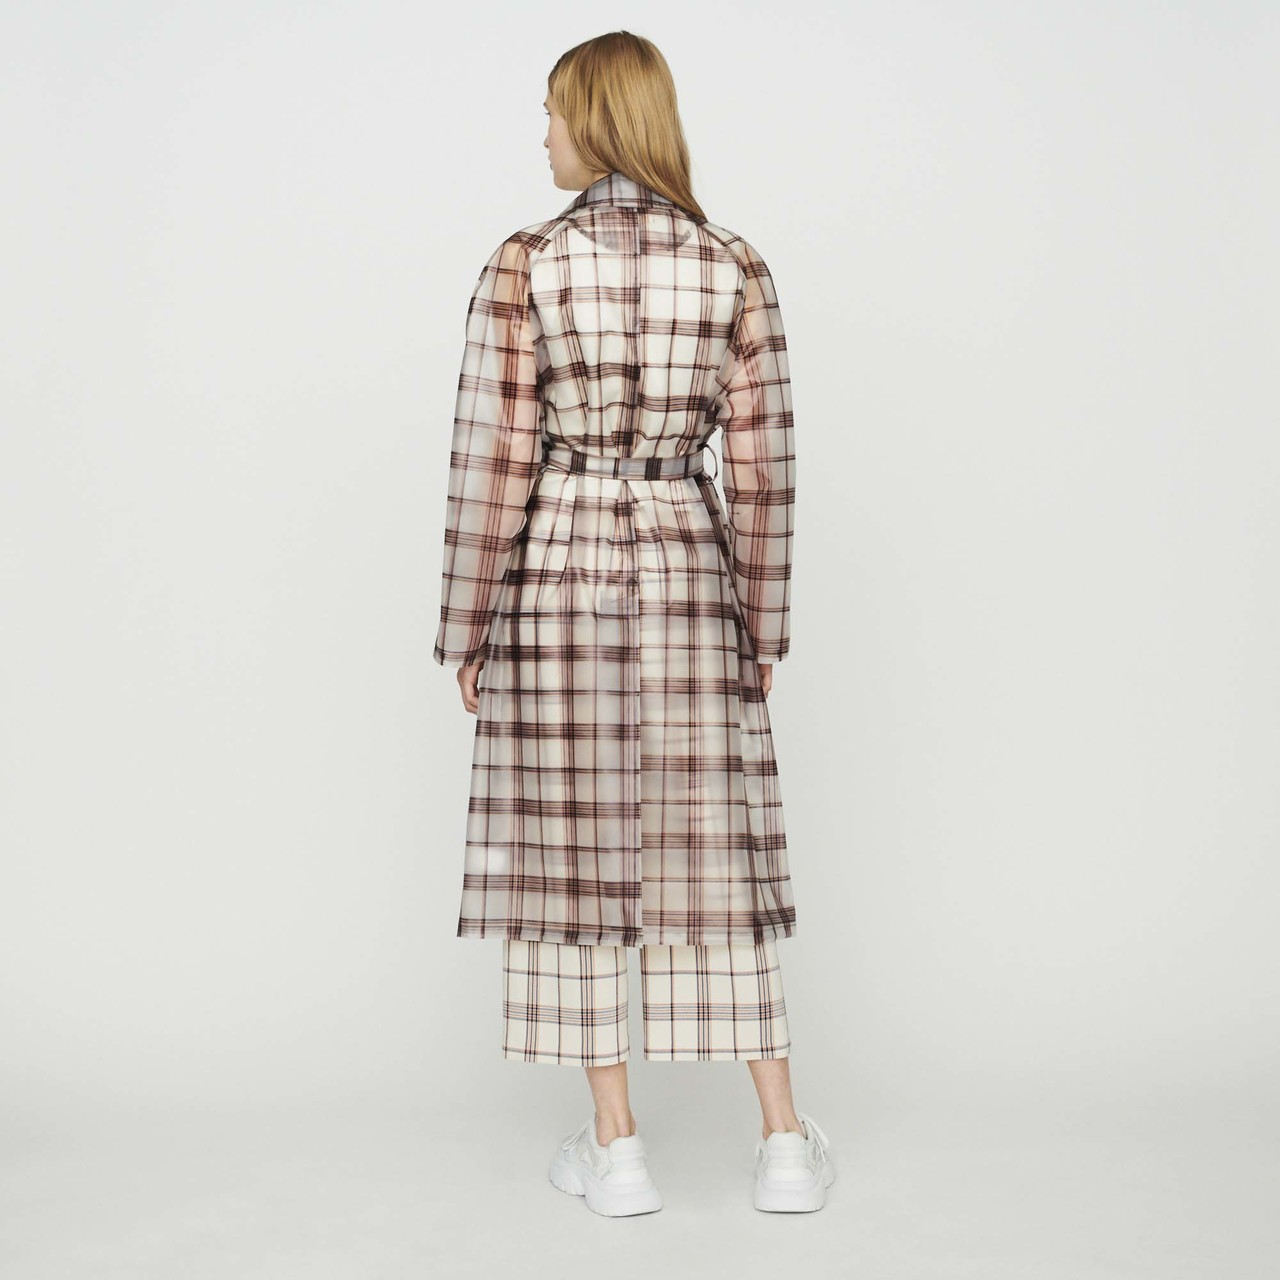 Transparent Checkered Windproof Jacket - Check